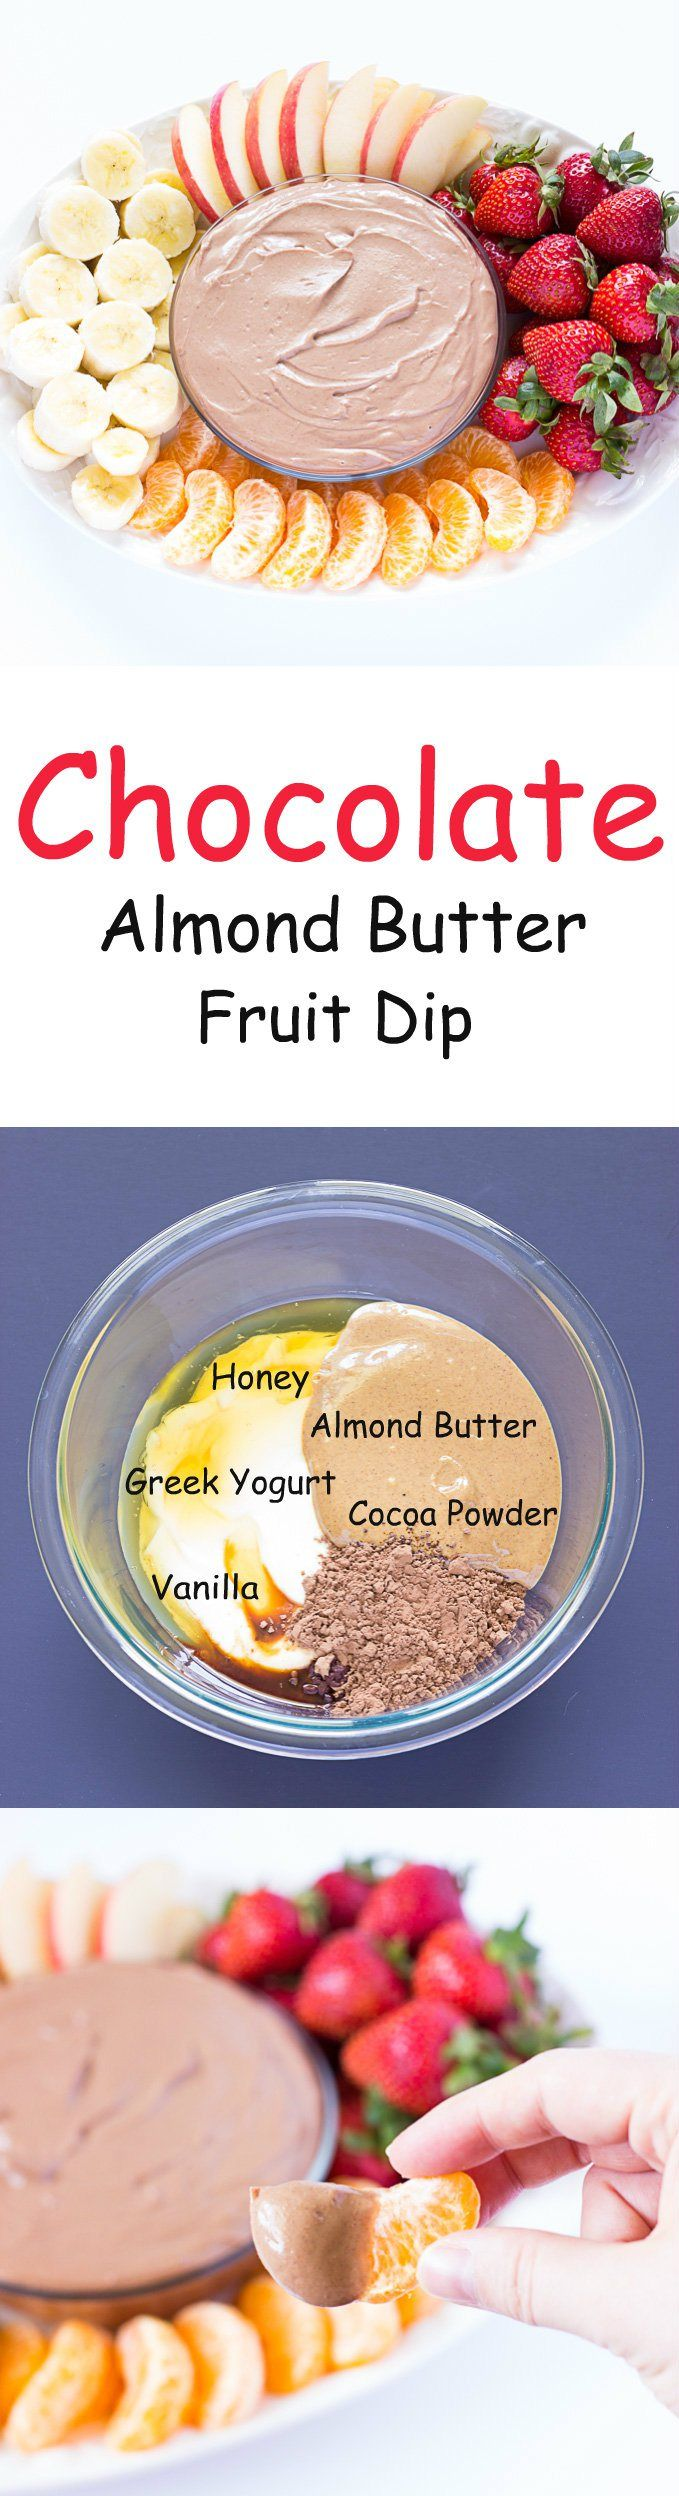 Chocolate Almond Butter Fruit Dip - Yogurt fruit dip with chocolate and almond butter. A great way to add protein to your #snack #ad #CrunchOn